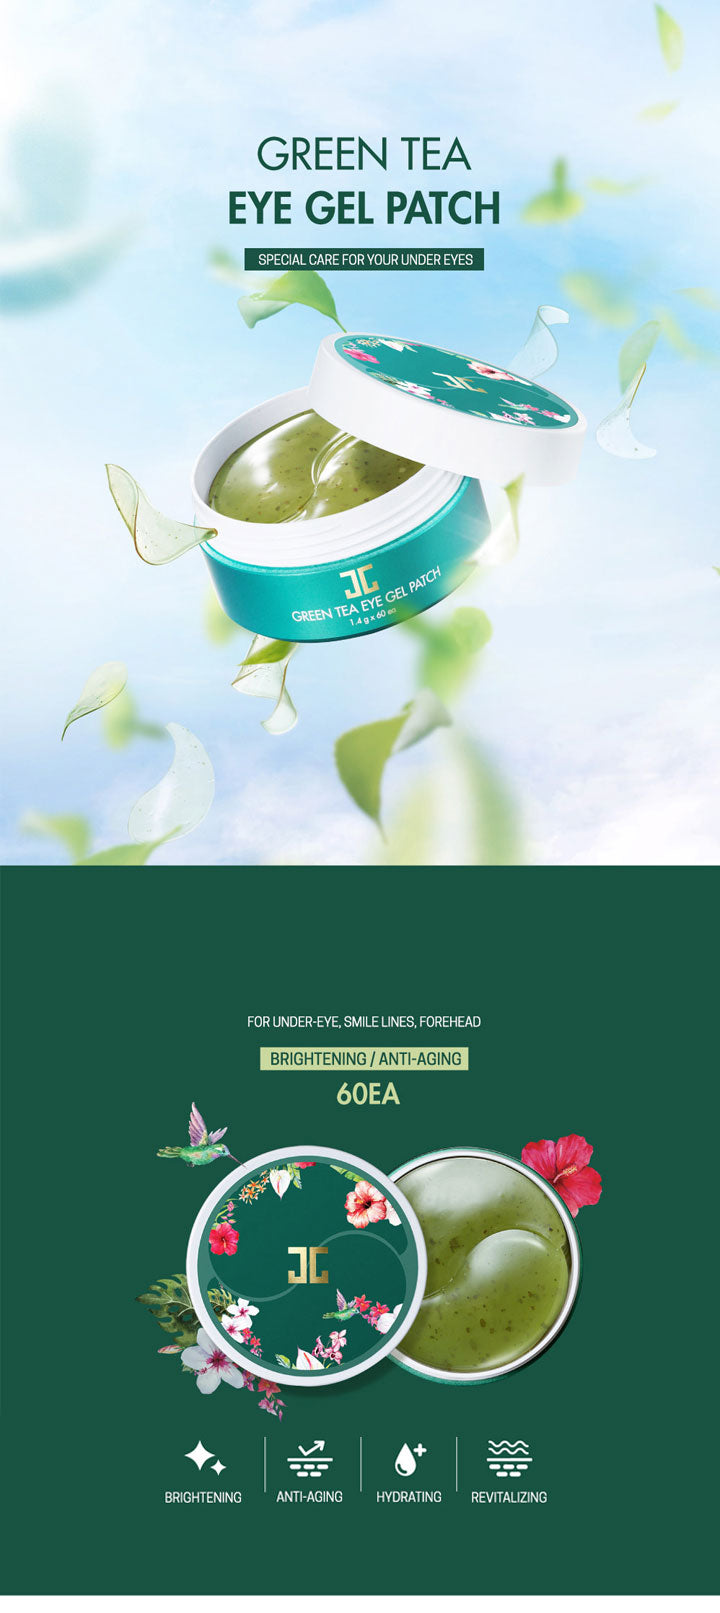 JAYJUN-GREEN-TEA-EYE-GEL-PATCH-1.jpg